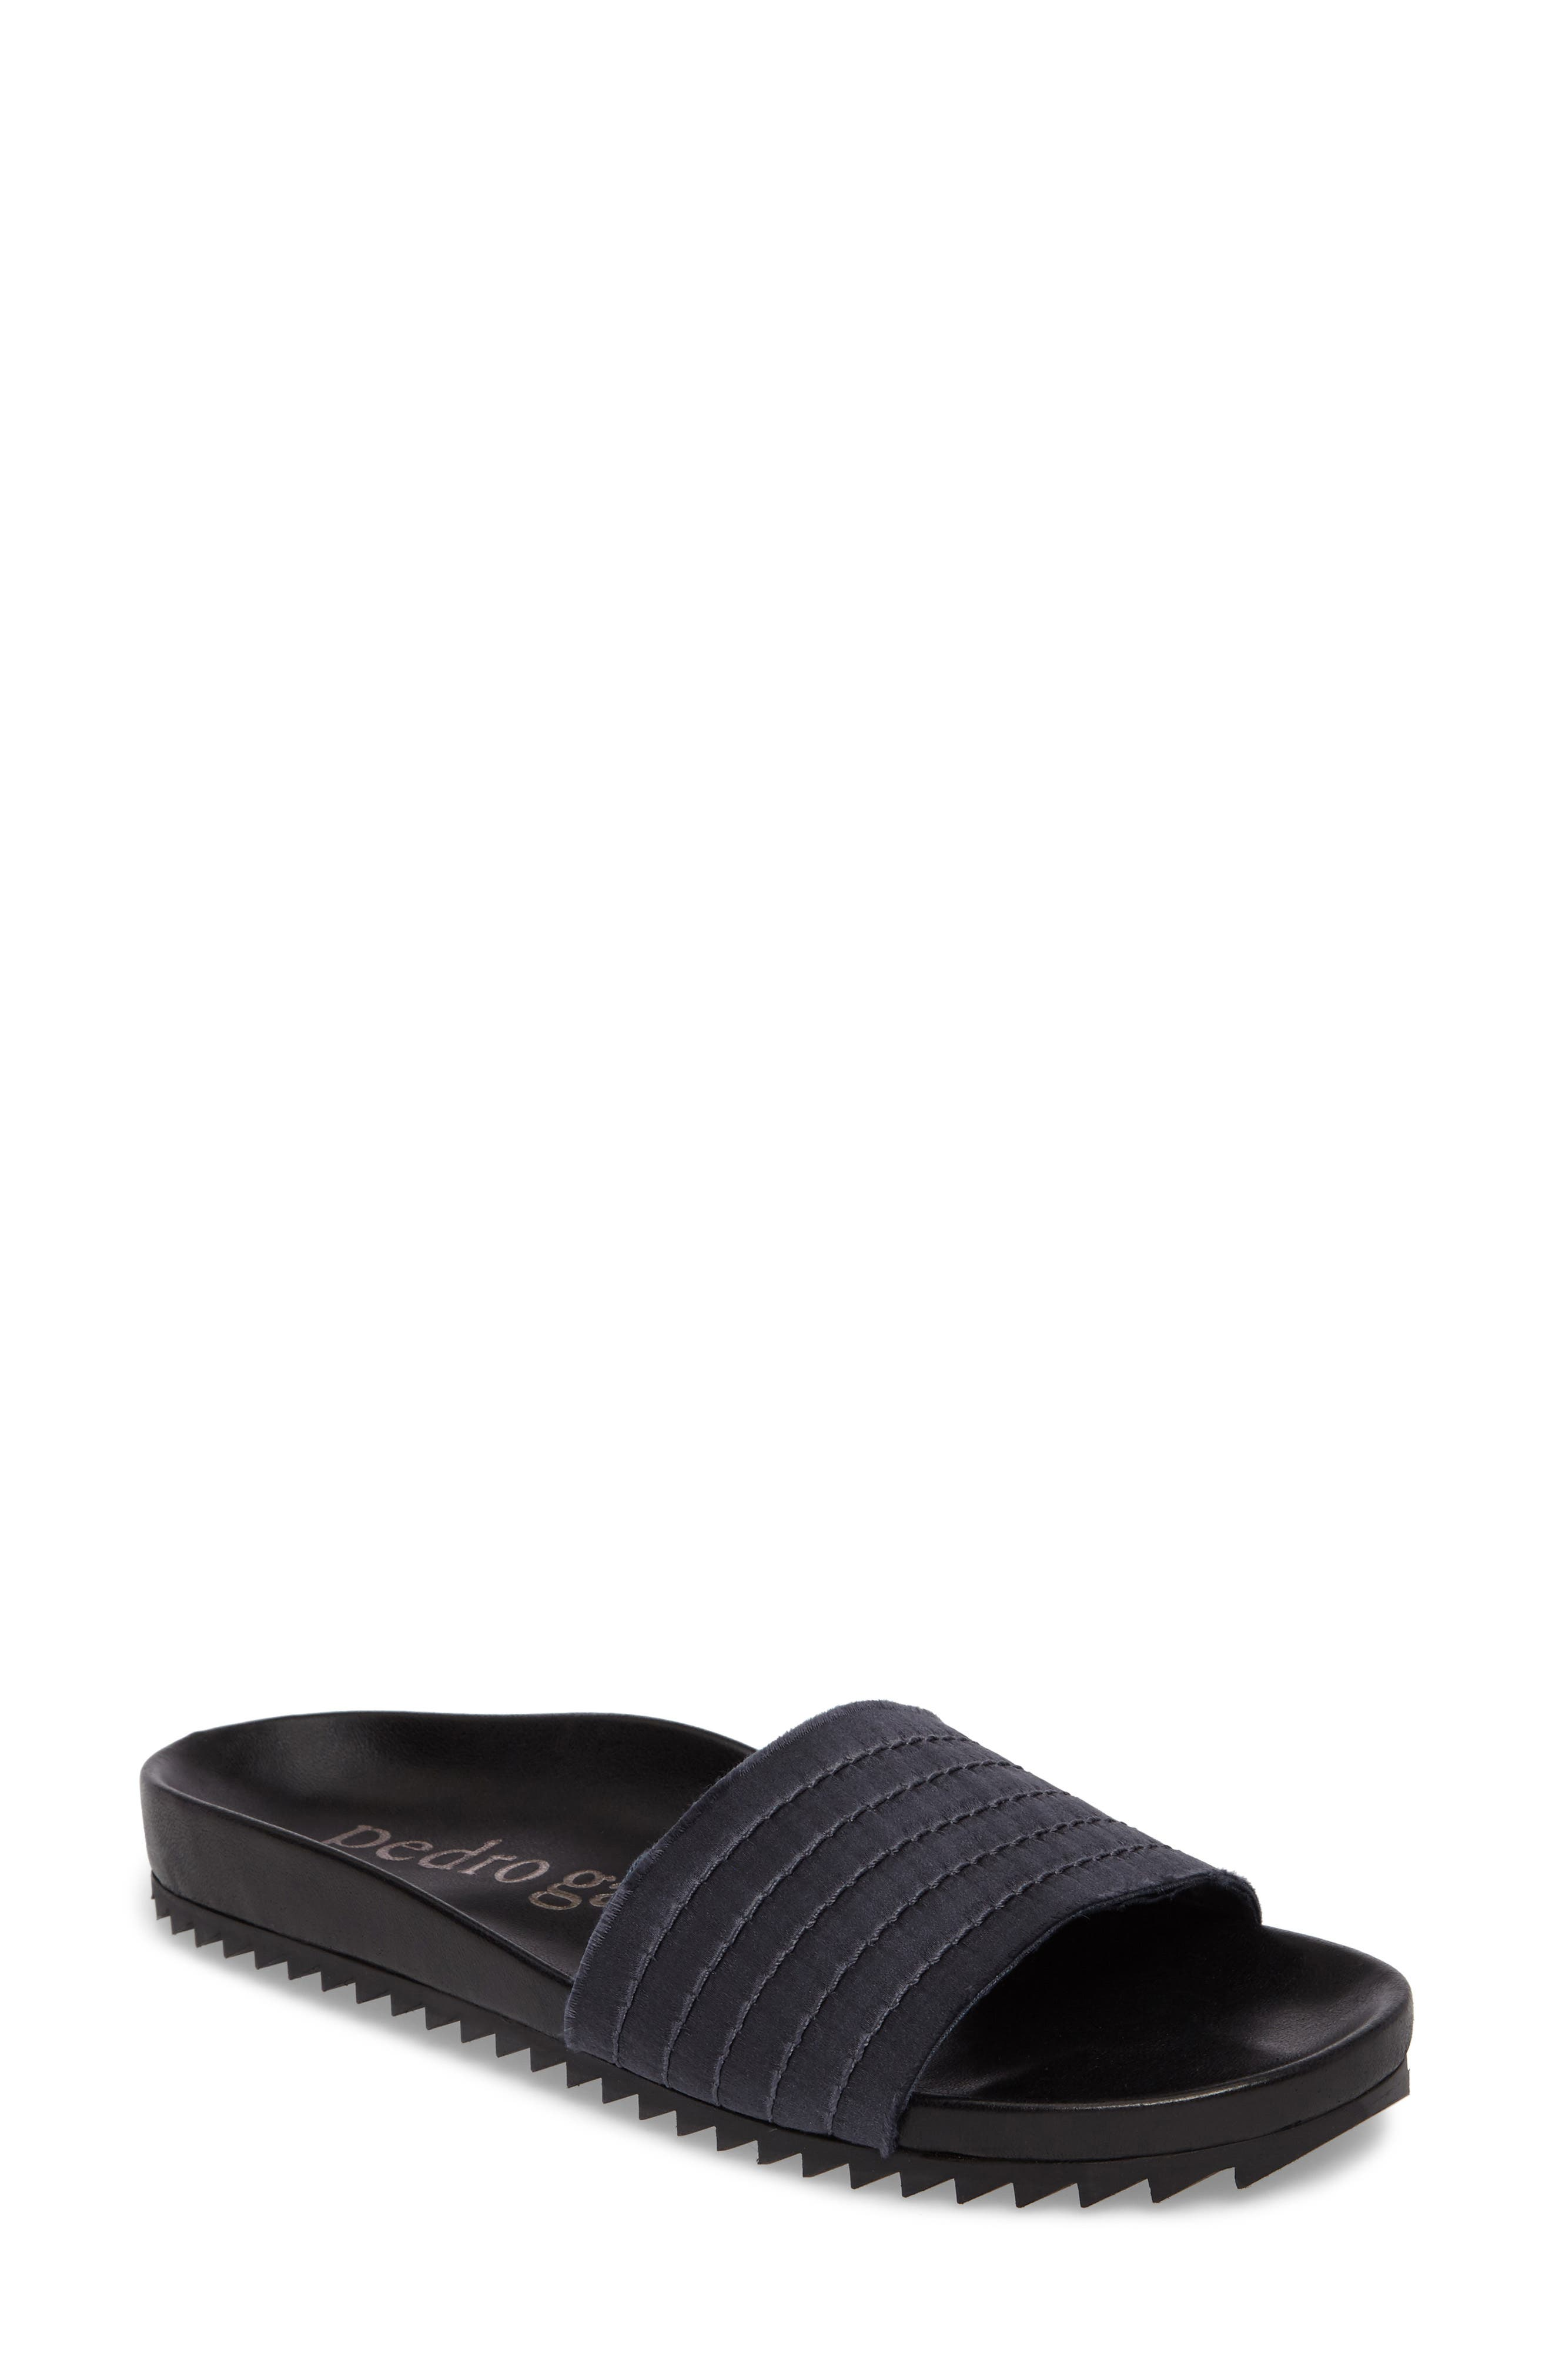 Amparo Slide Sandal,                             Main thumbnail 1, color,